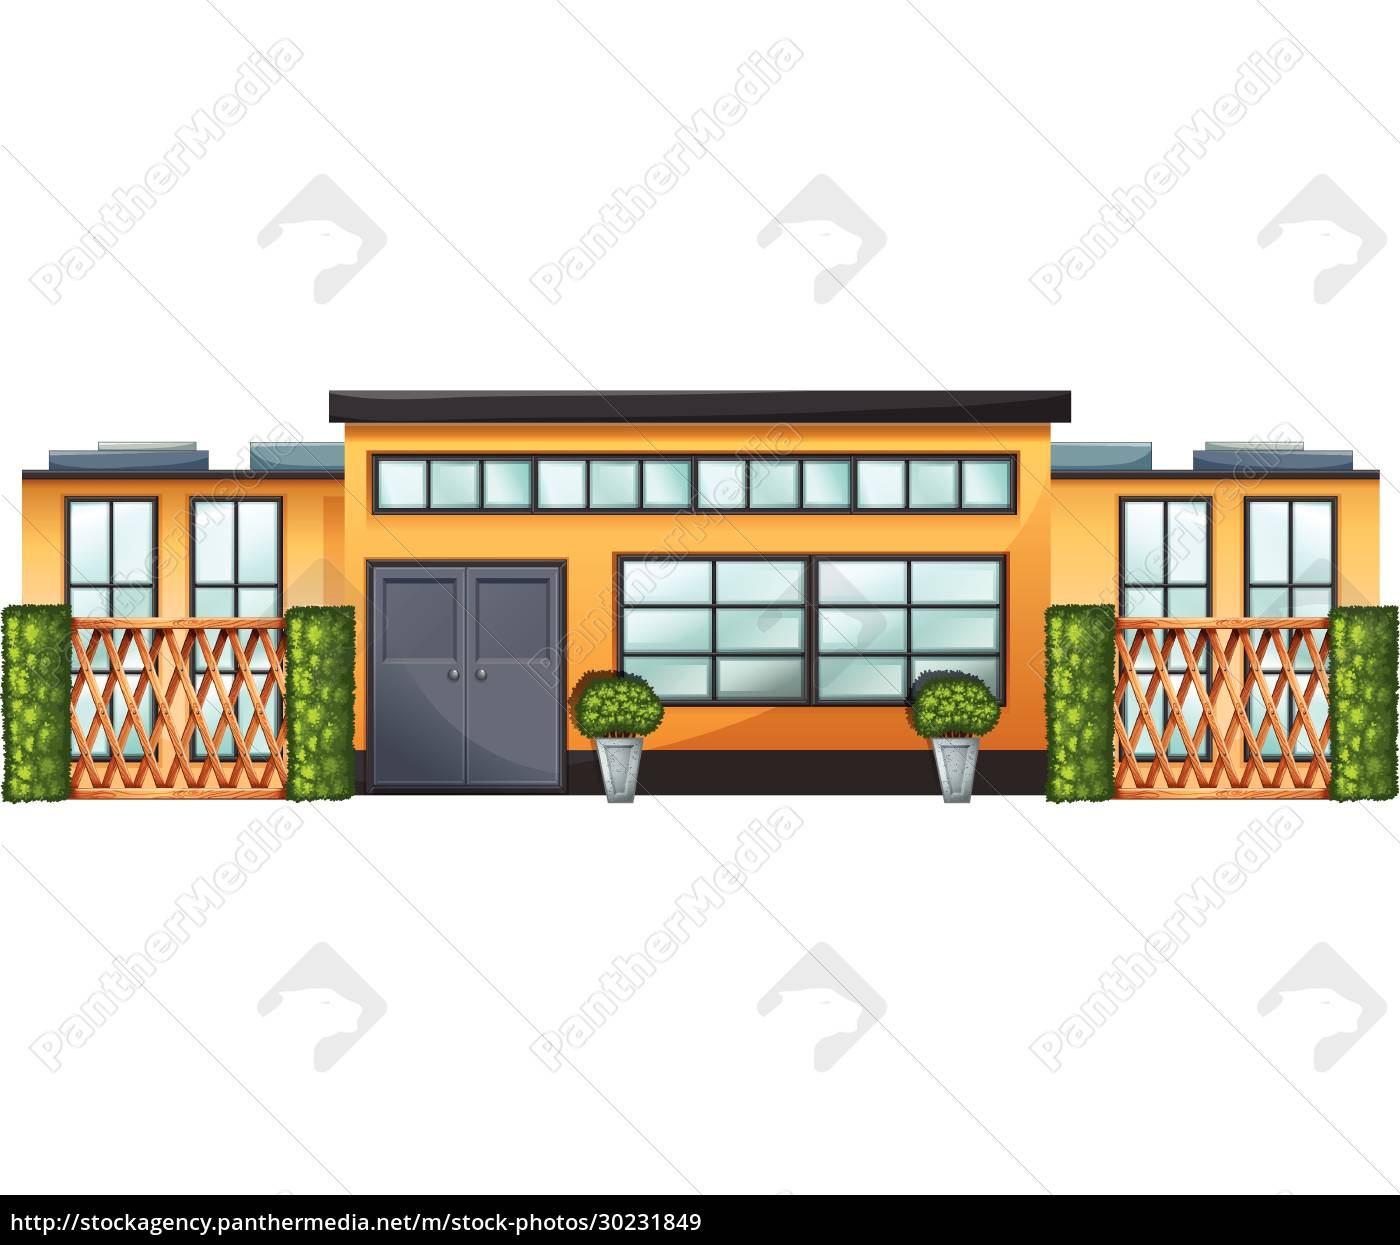 a, building, with, green, plants - 30231849